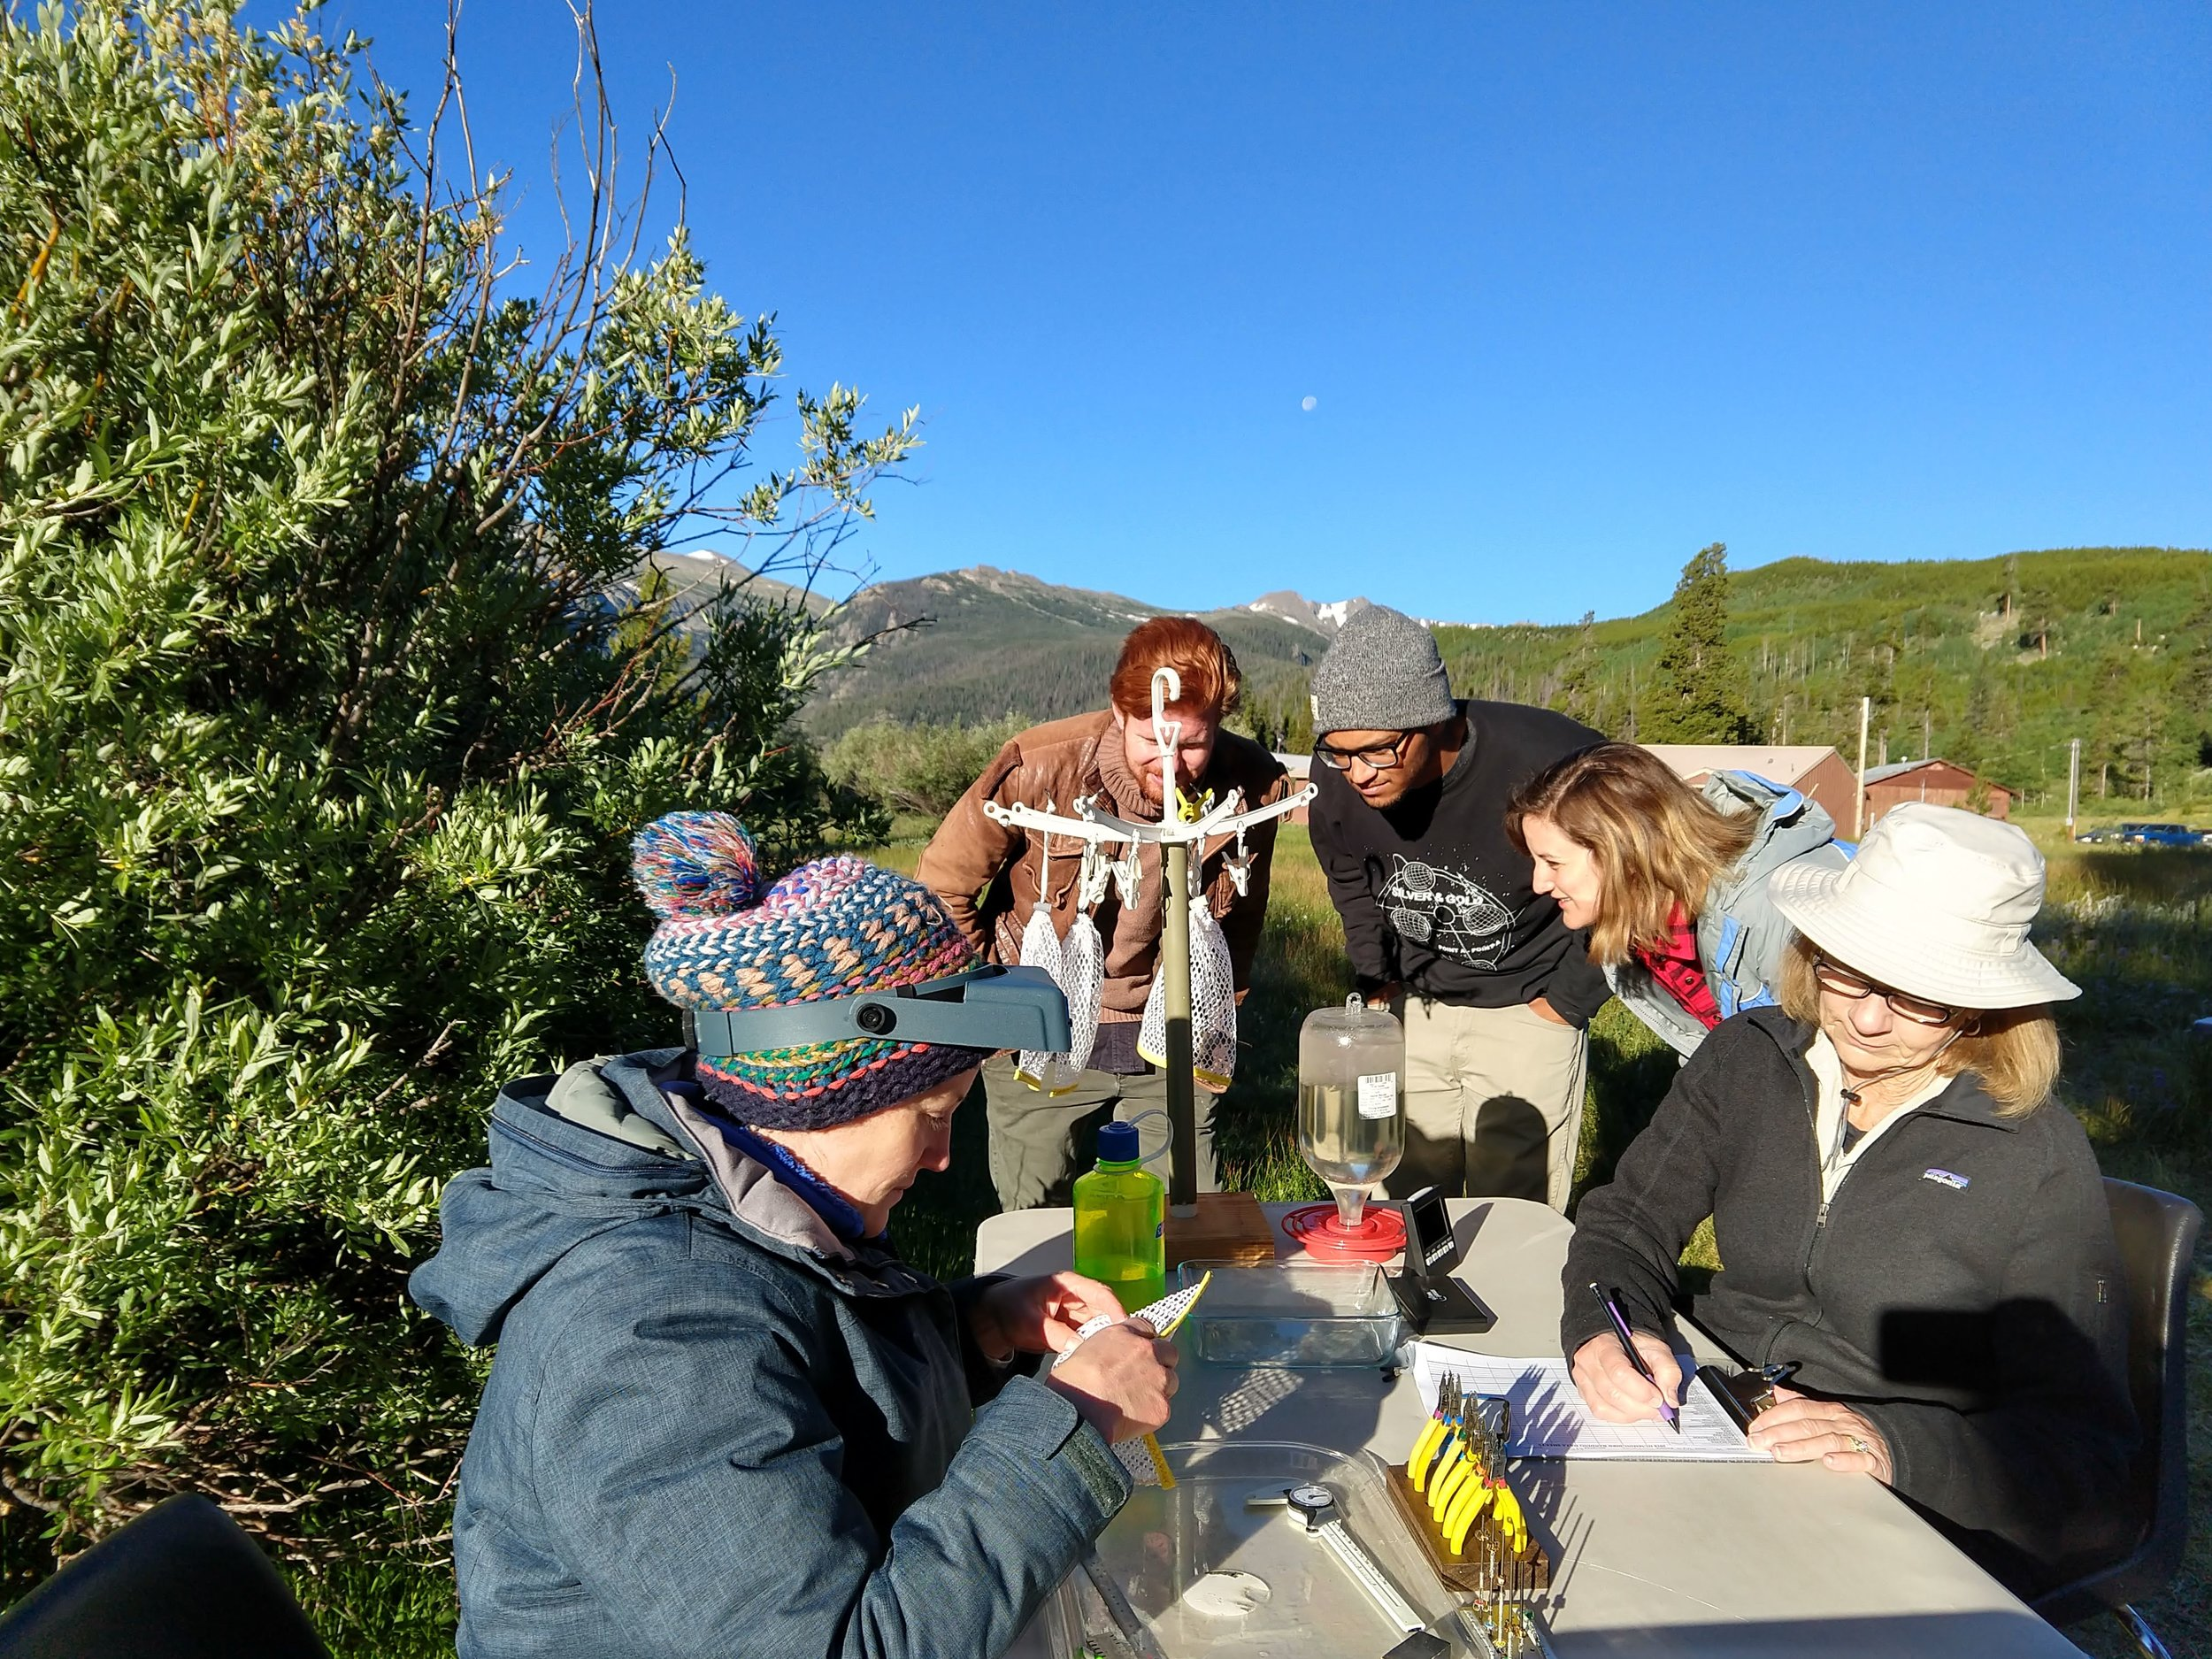 The band looks at bags of hummingbirds, while scientists and volunteers record data (e.g. weight, age, gender).